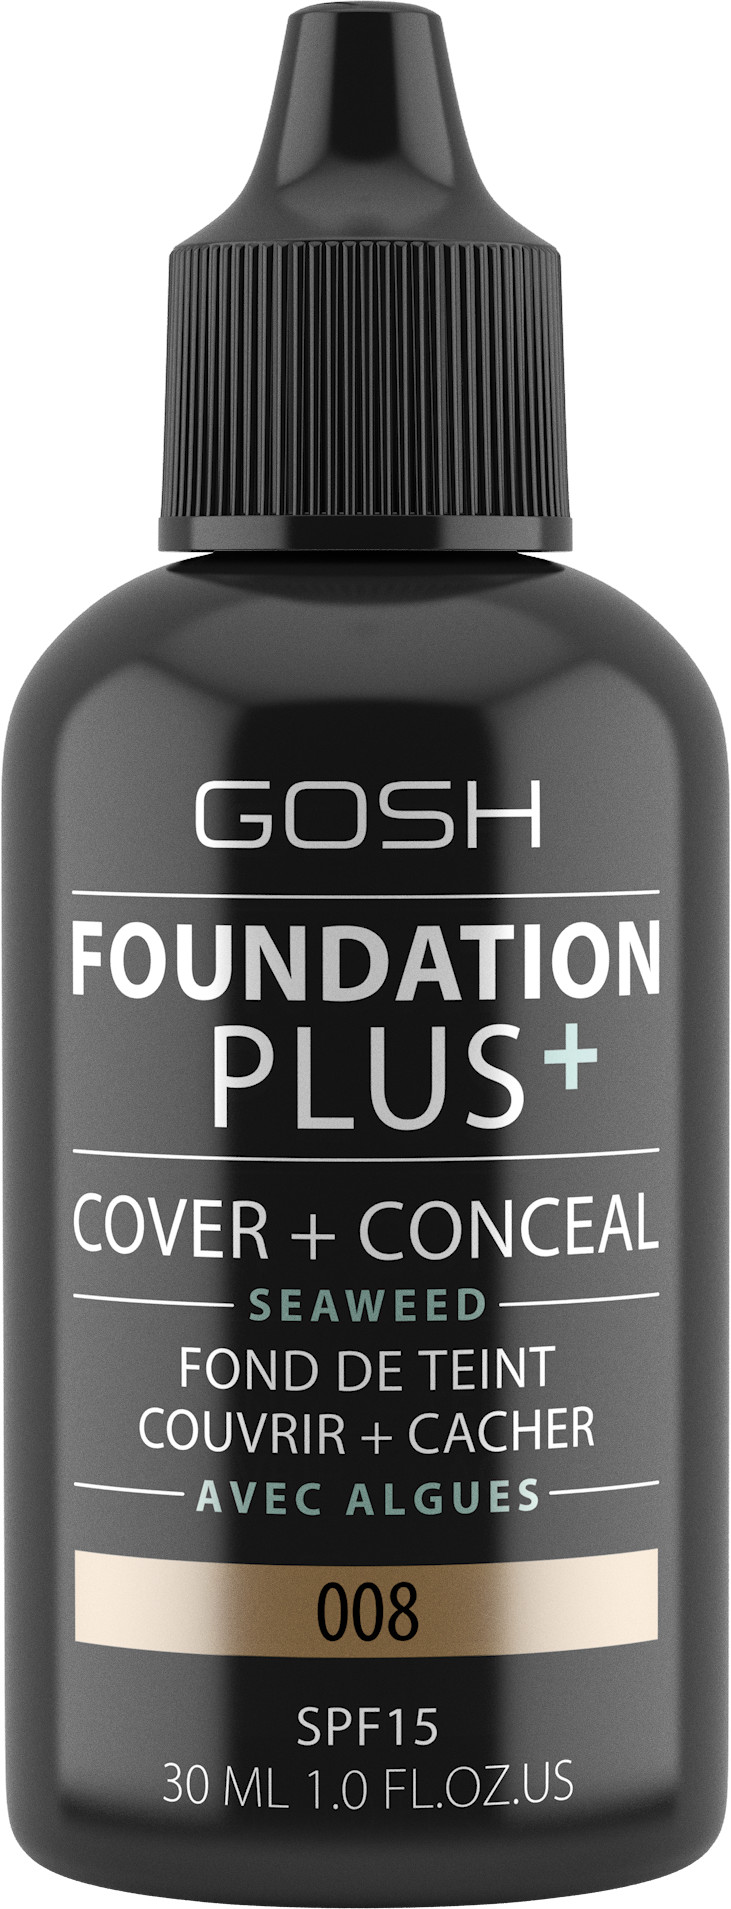 GOSH_Foundation Plus+.jpg